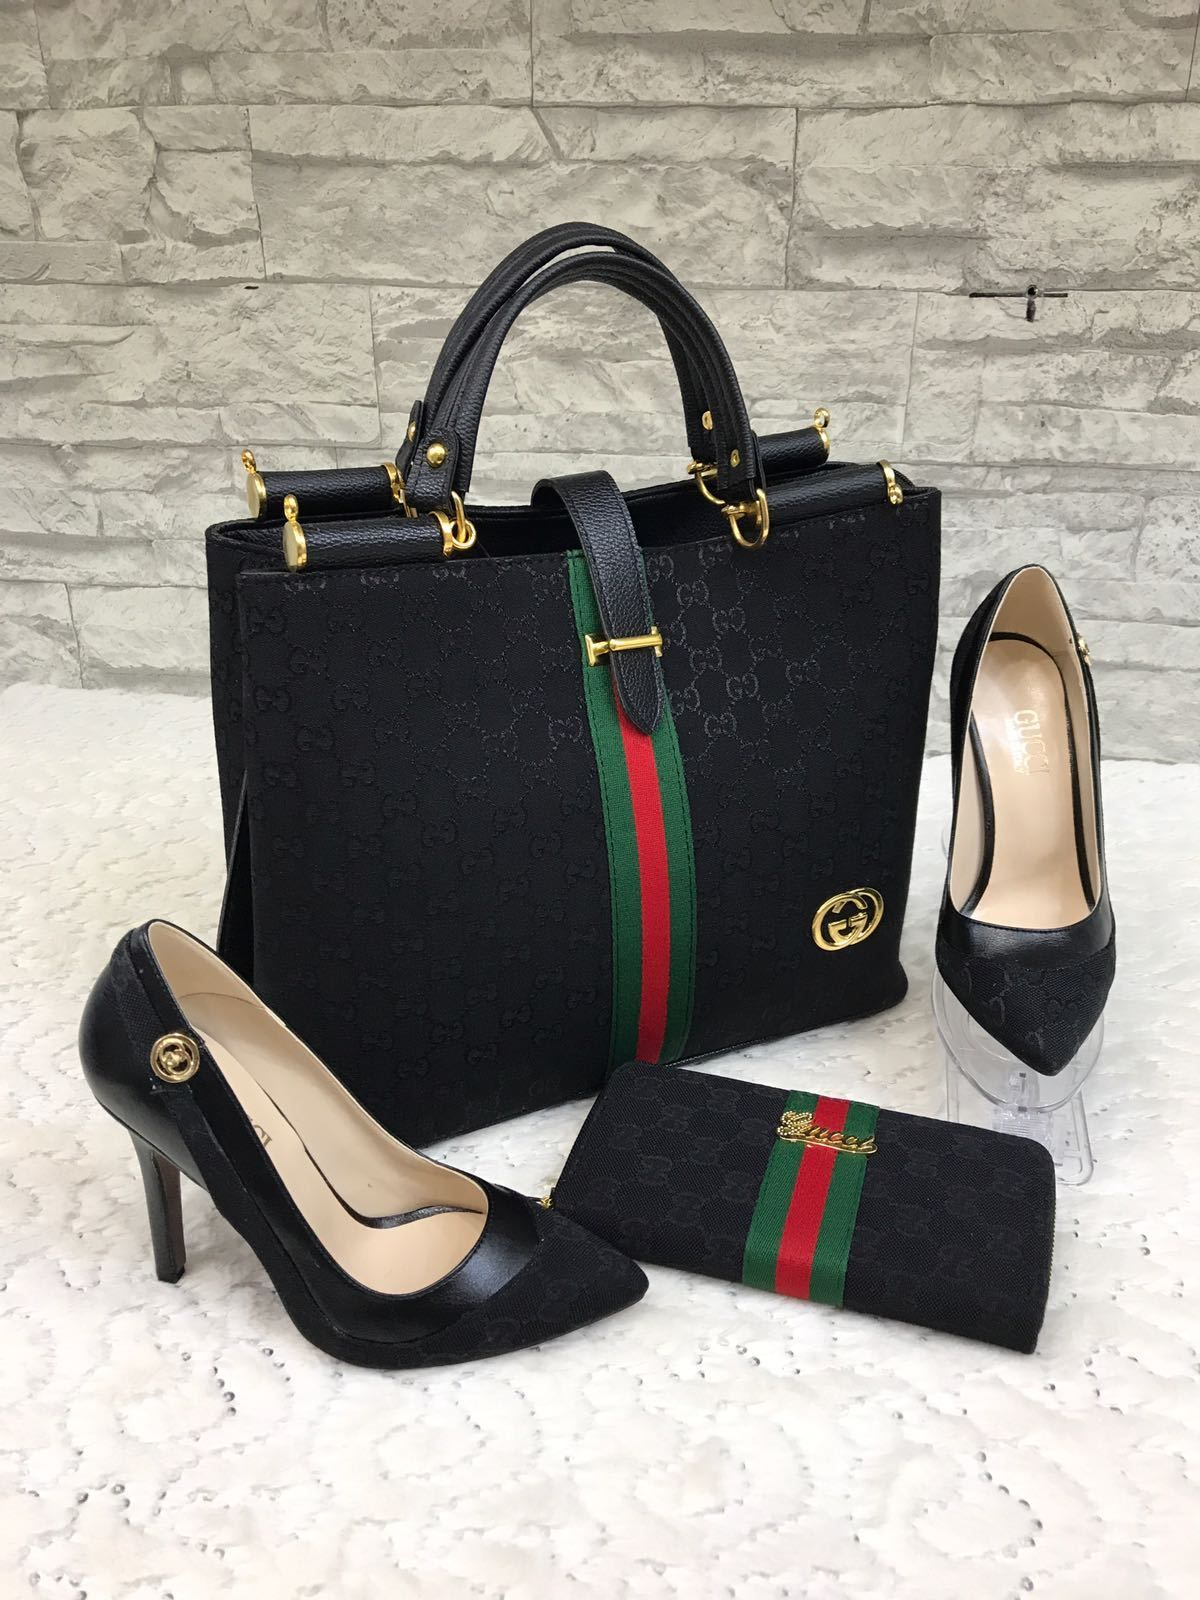 Free shipping Gucci set 3 pieces handbag shoes and wallet high-quality  replica GG fabric comes in a transparent nylon bag and white box for shoes  without a ... 83bb8729f4cbc